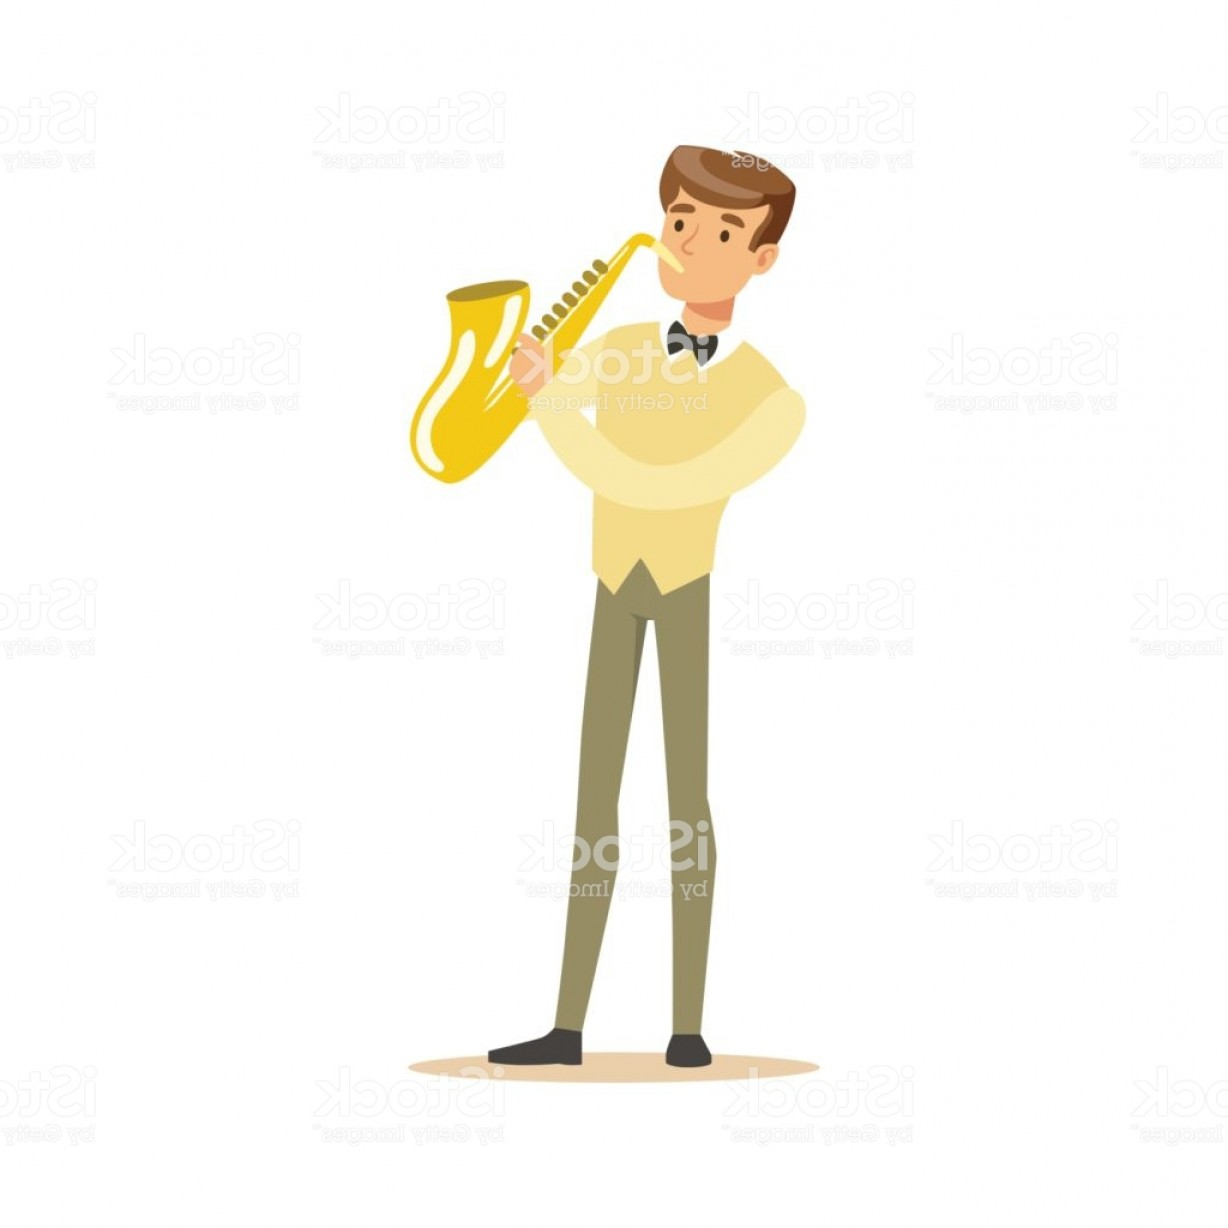 Saxophone Vector: Musician Playing A Saxophone Vector Illustration Gm